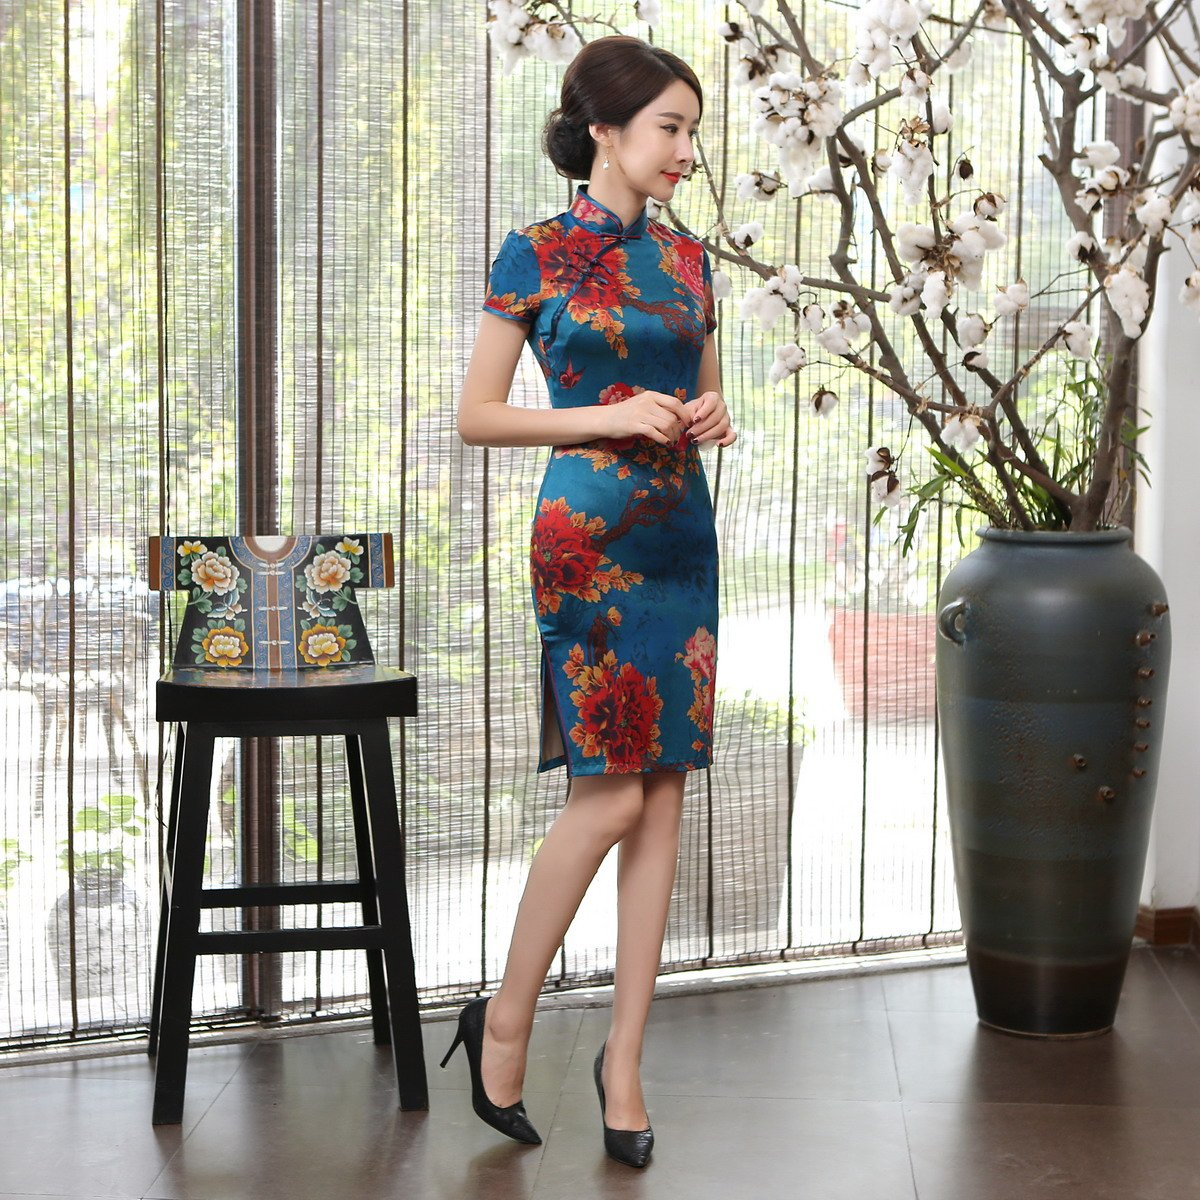 ACVIP Womens Vintage Flower Print Short Chinese Cheongsam Dresses Slim Fit: Amazon.co.uk: Clothing